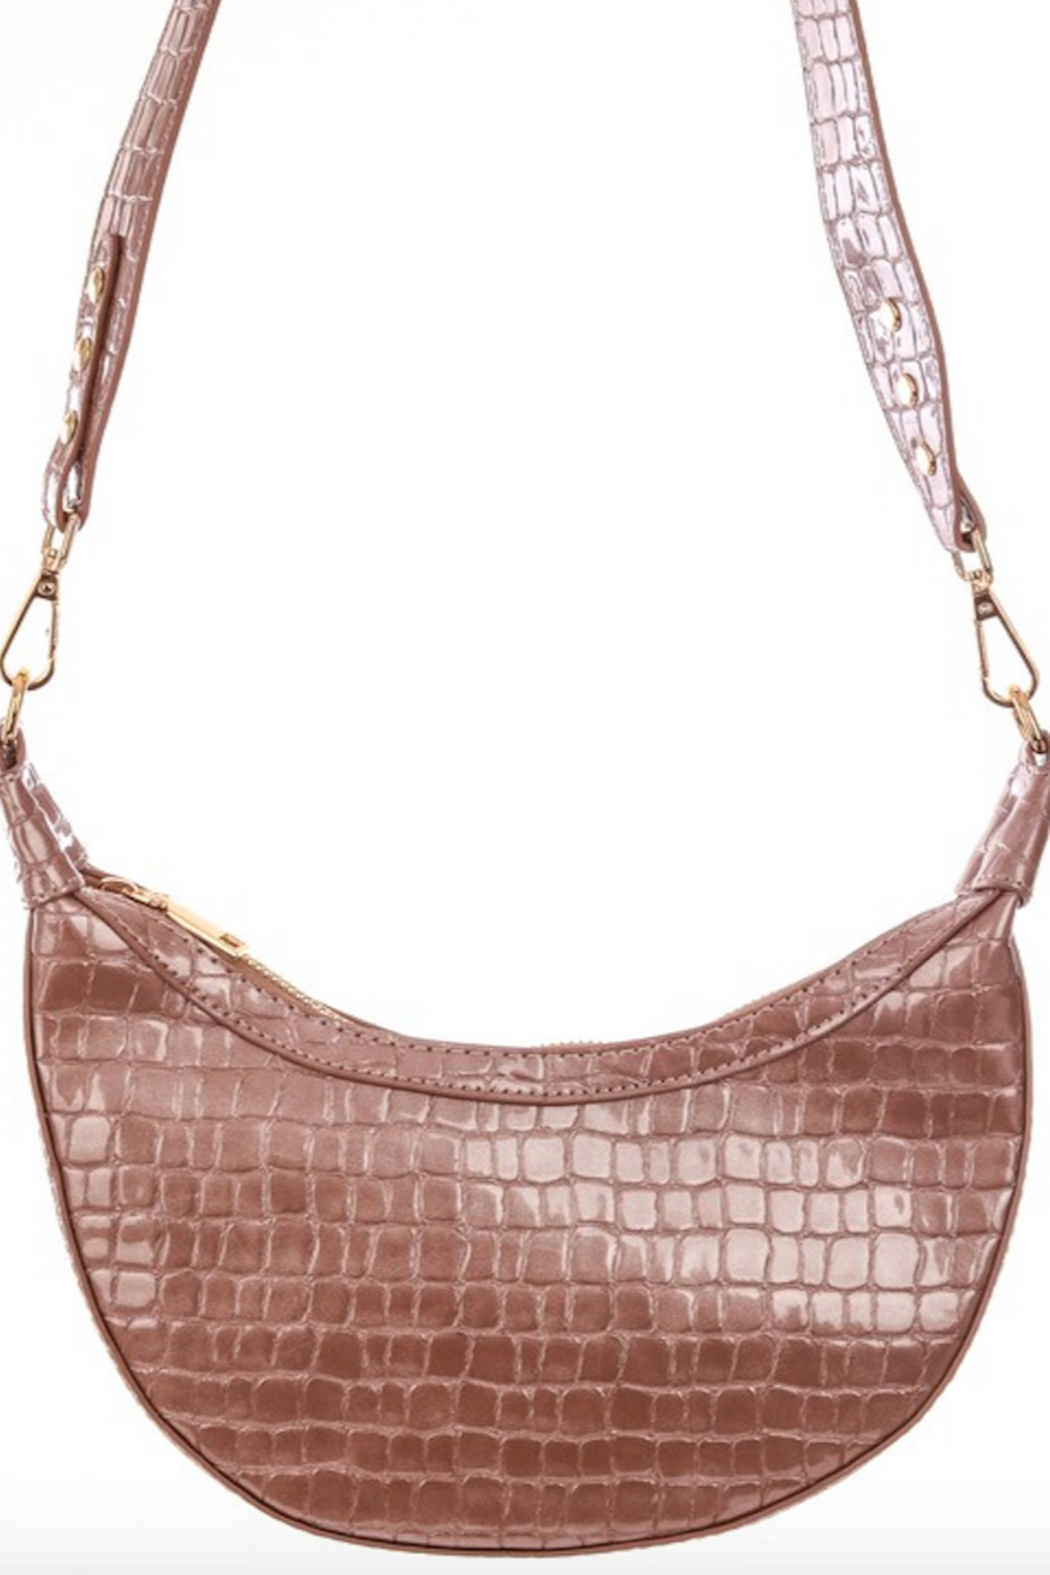 Anarchy Street Faux Alligator Croissant Hand Bag - Front Full Image